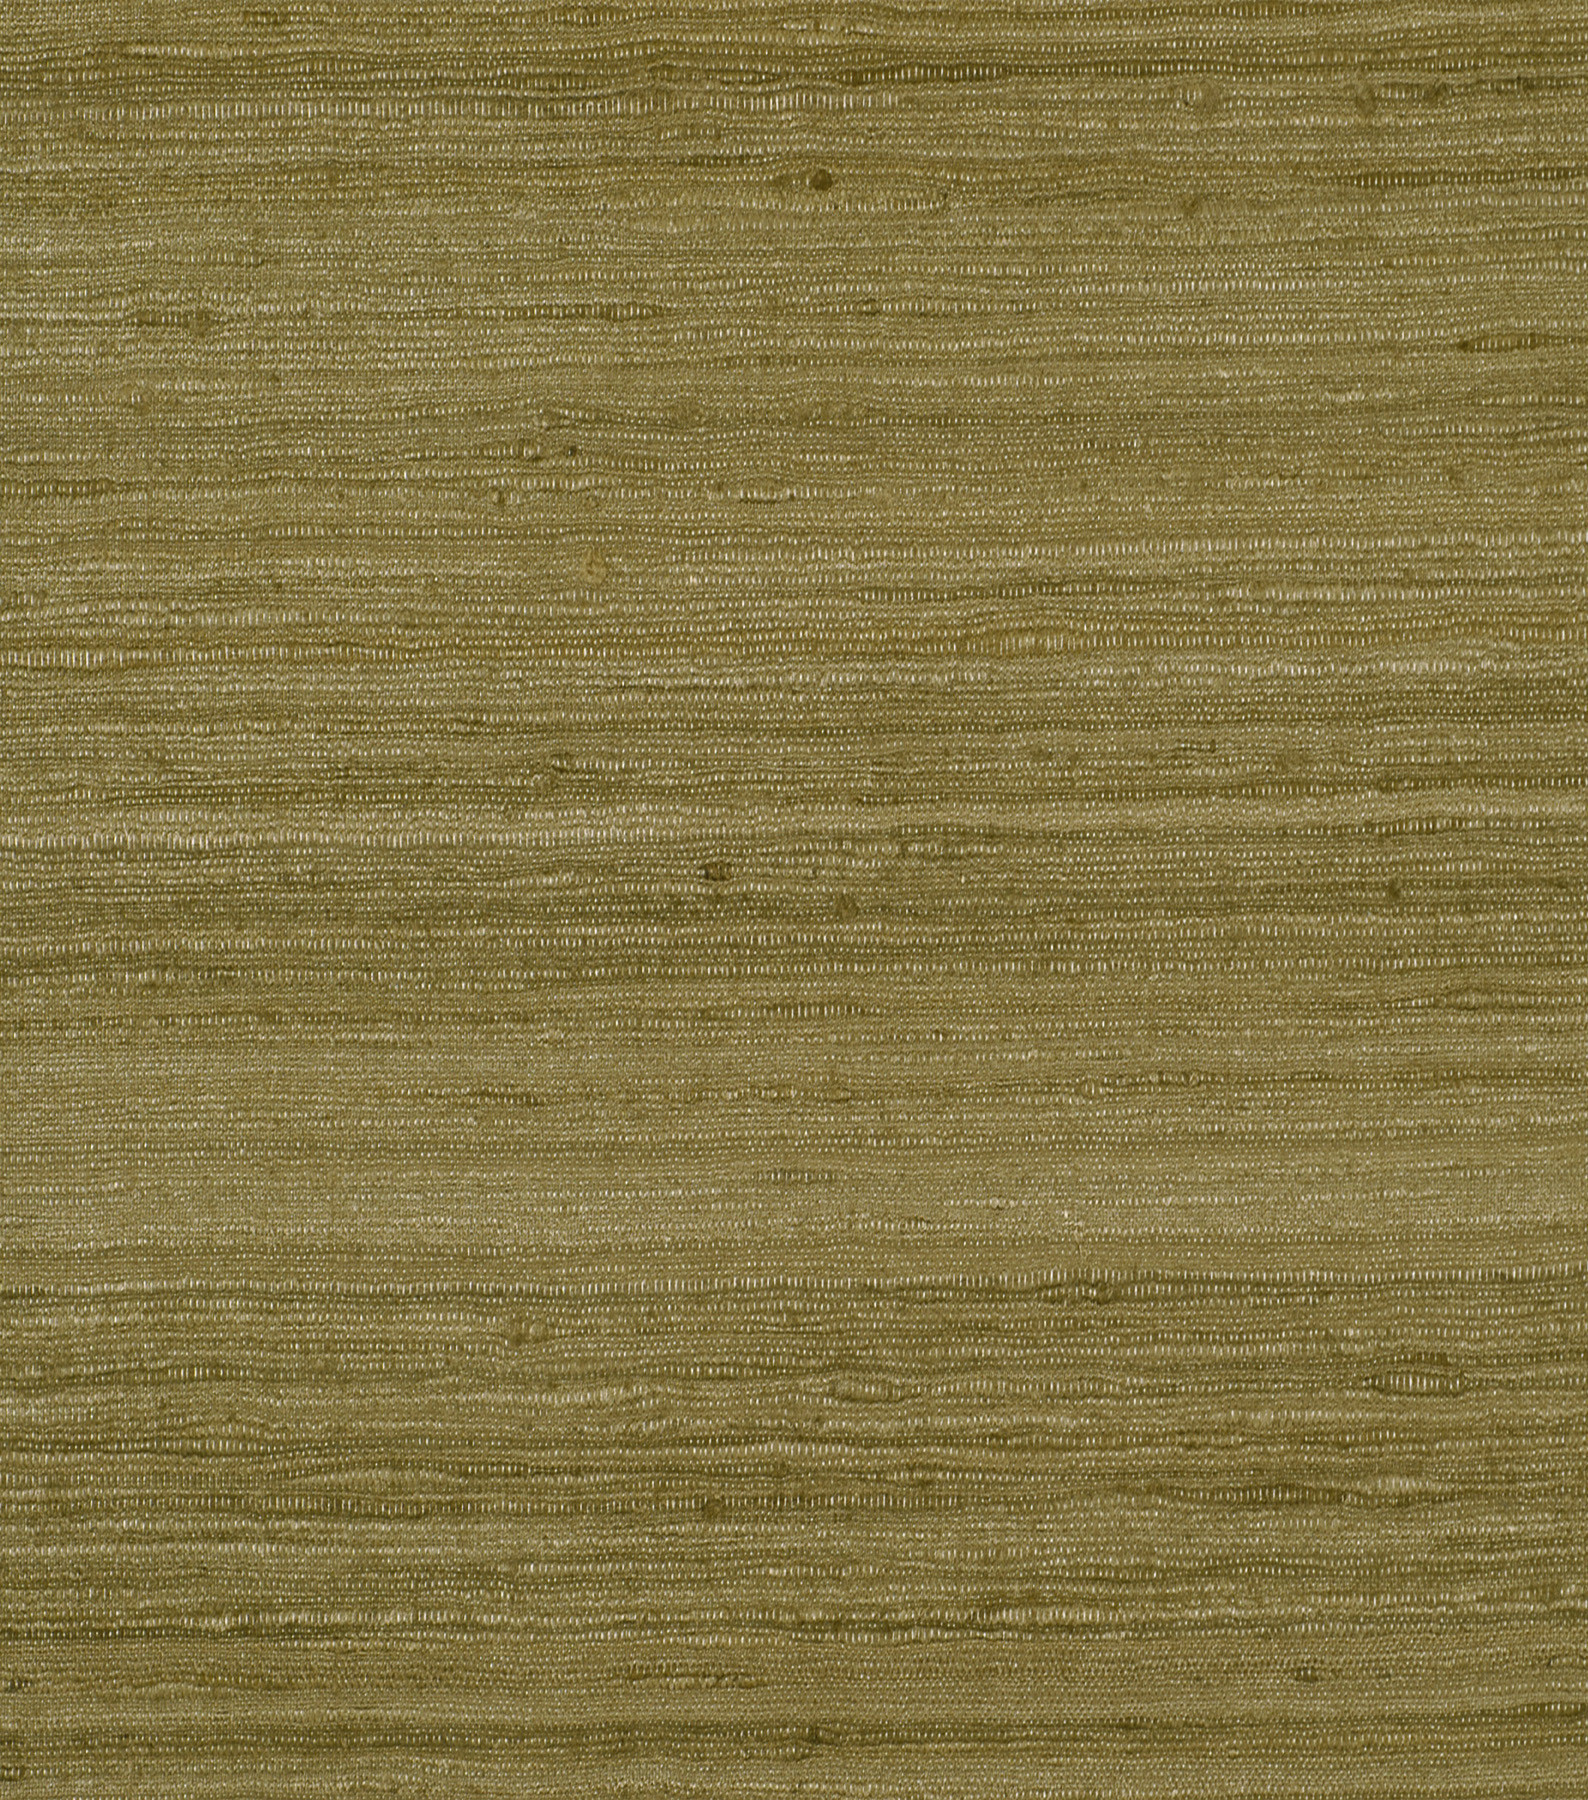 Home Decor 8\u0022x8\u0022 Fabric Swatch-Solid Fabric Signature Series Aussie Silt